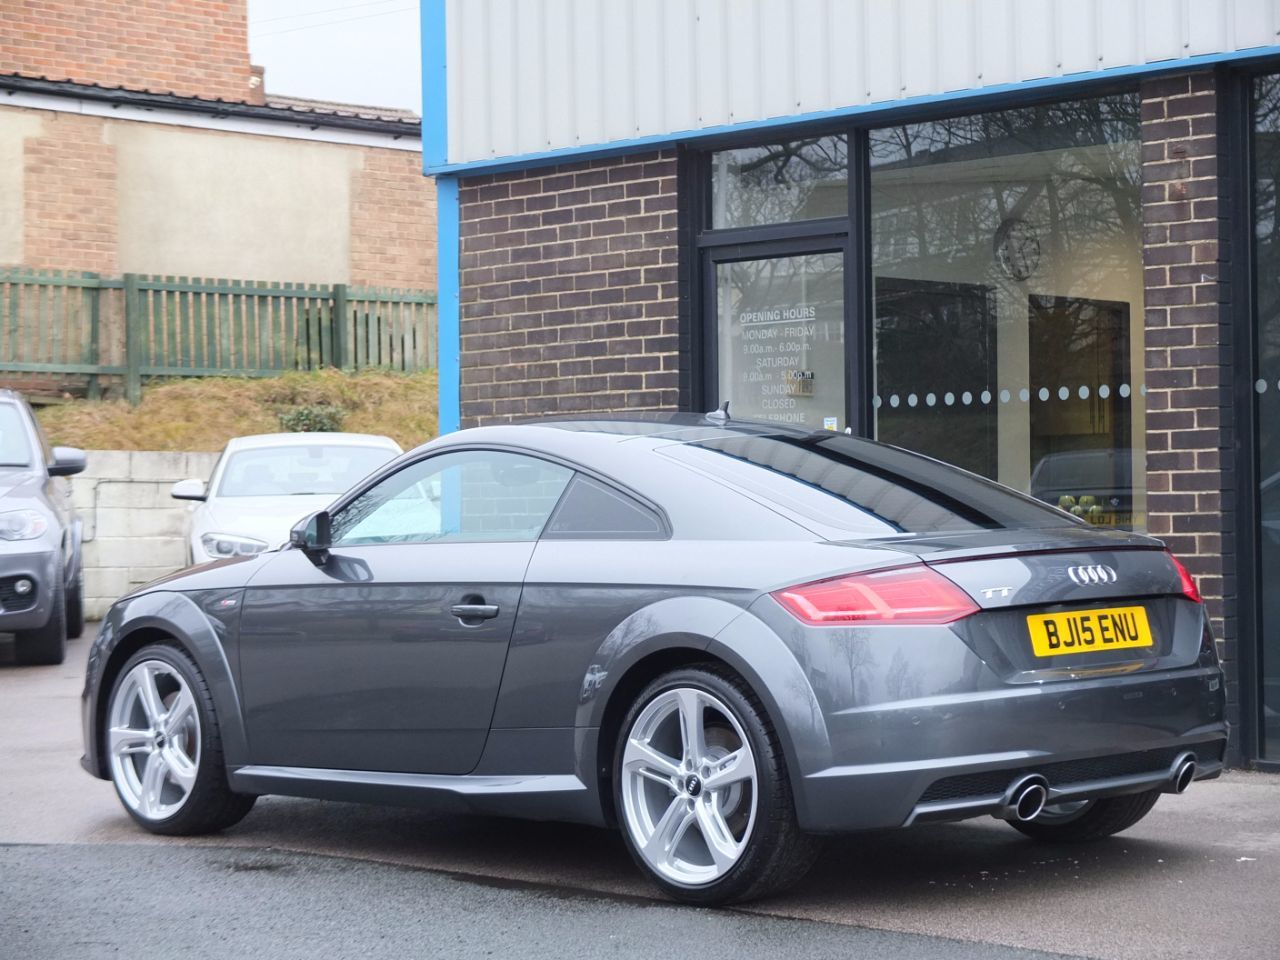 Audi TT Coupe 2.0T FSI S Line 230ps Coupe Petrol Daytona Grey Metallic